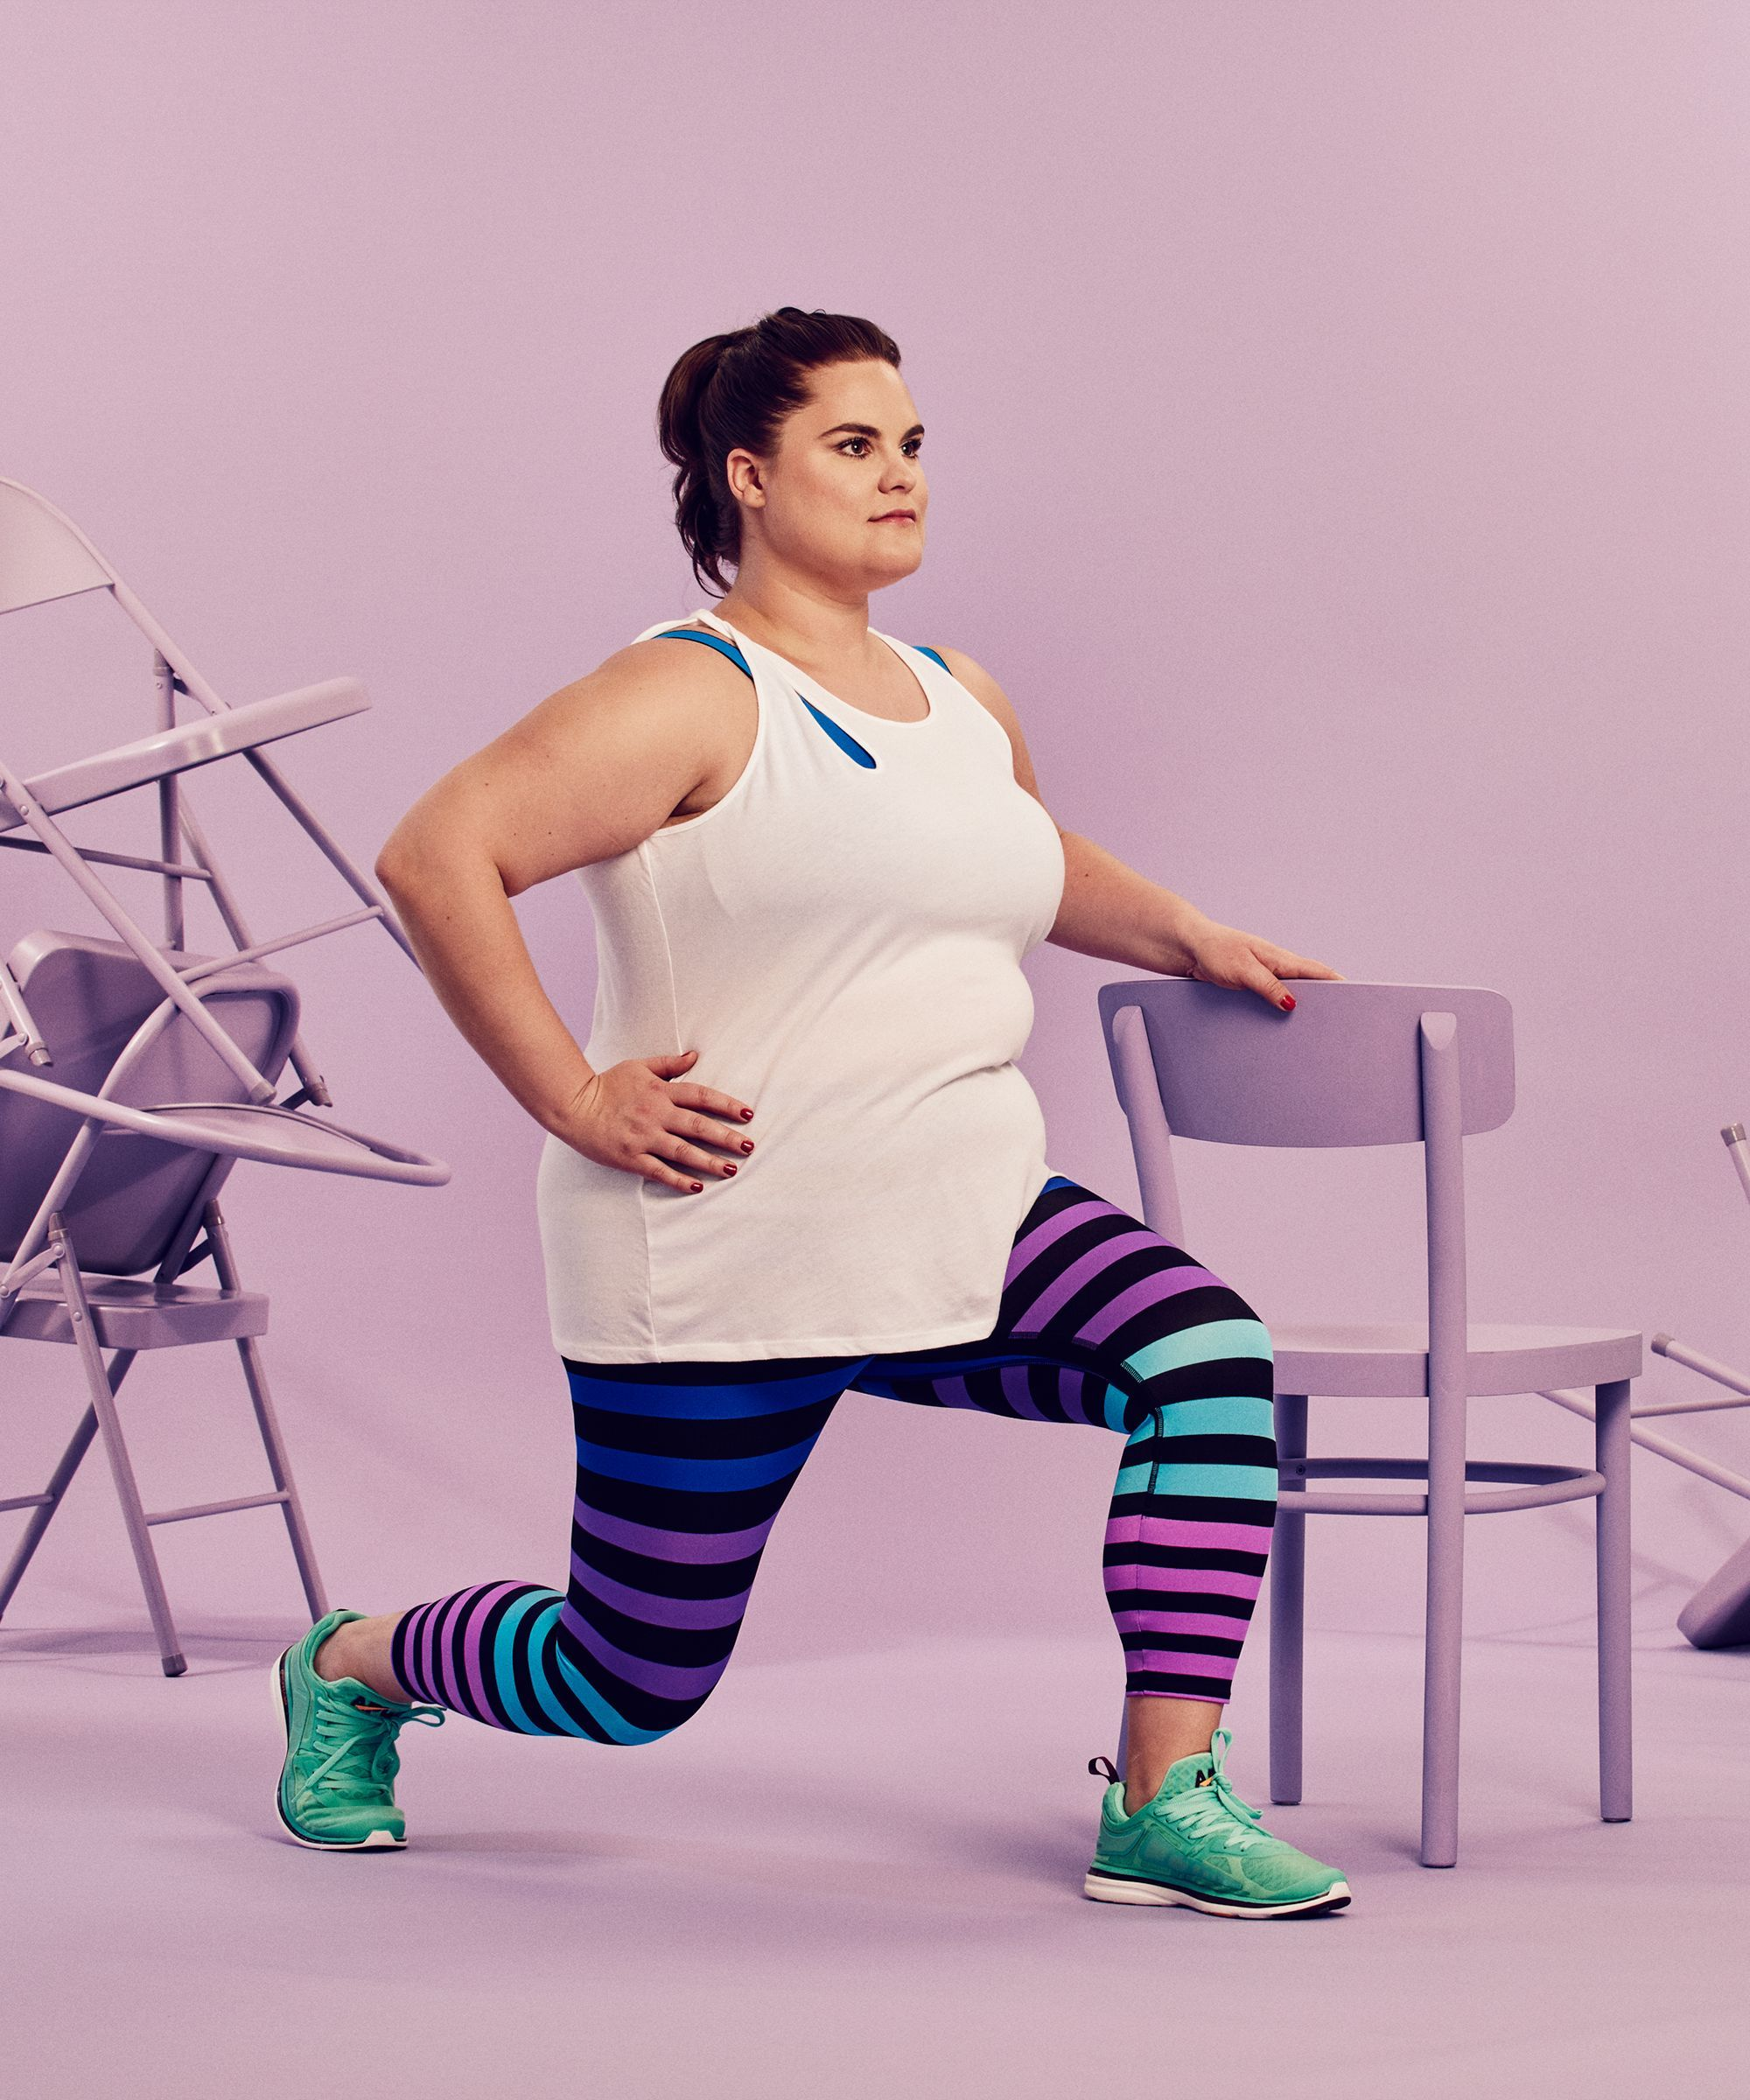 chair gym workout videos saddle benefits the full body 30 day challenge you can do at home